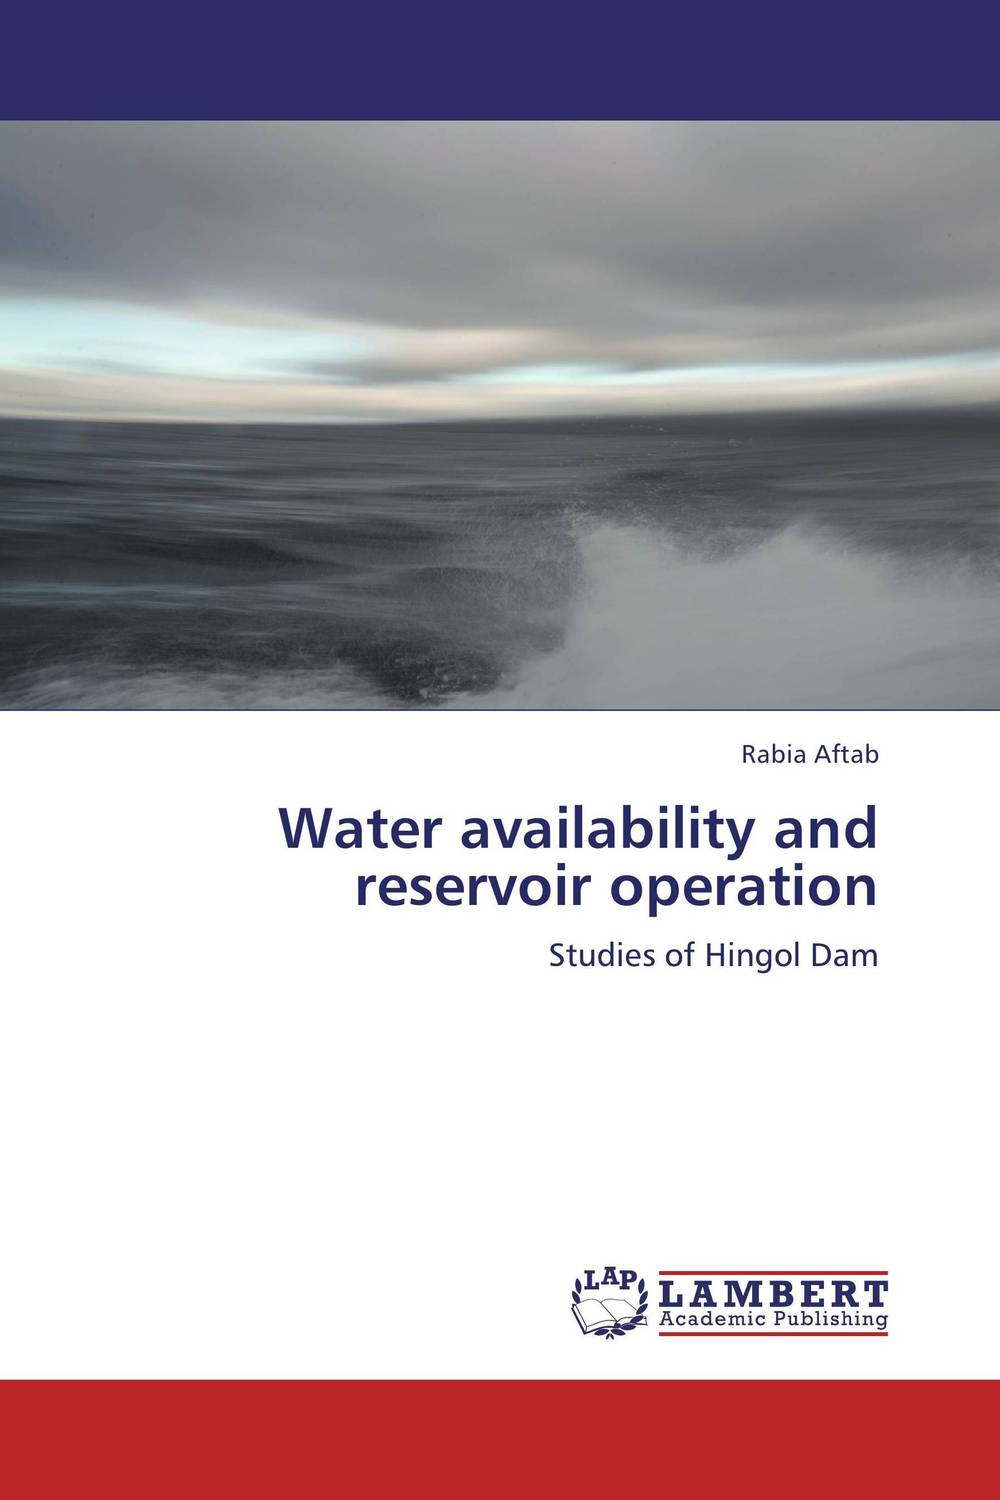 Water availability and reservoir operation dam and reservoir optimization model aswan high dam reservoir egypt